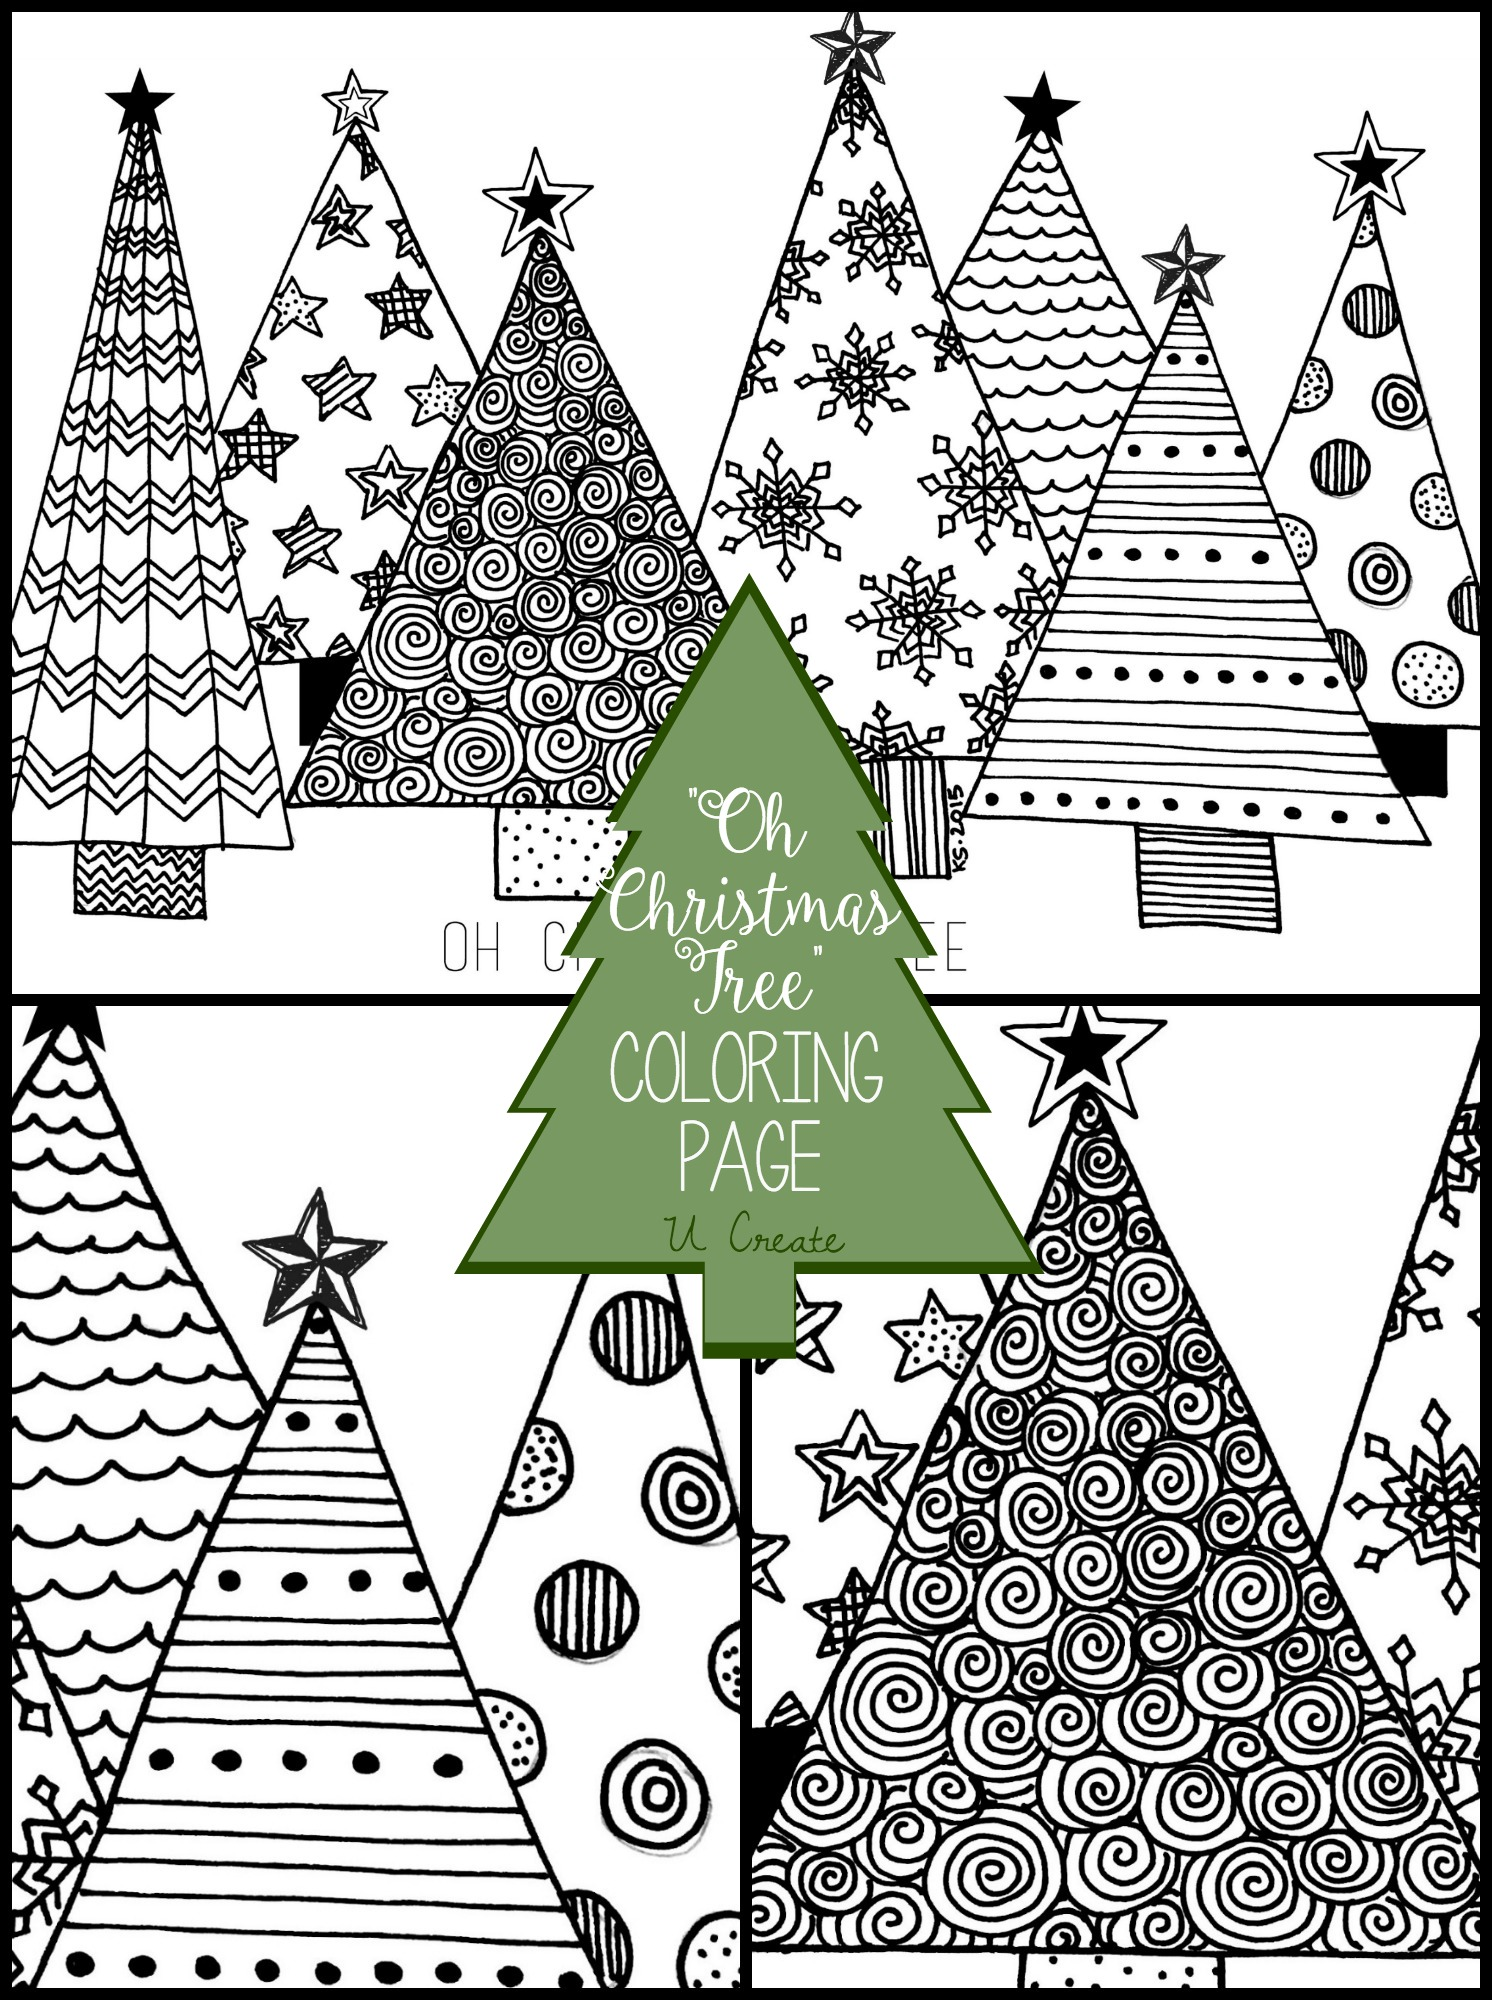 oh christmas tree coloring page u create